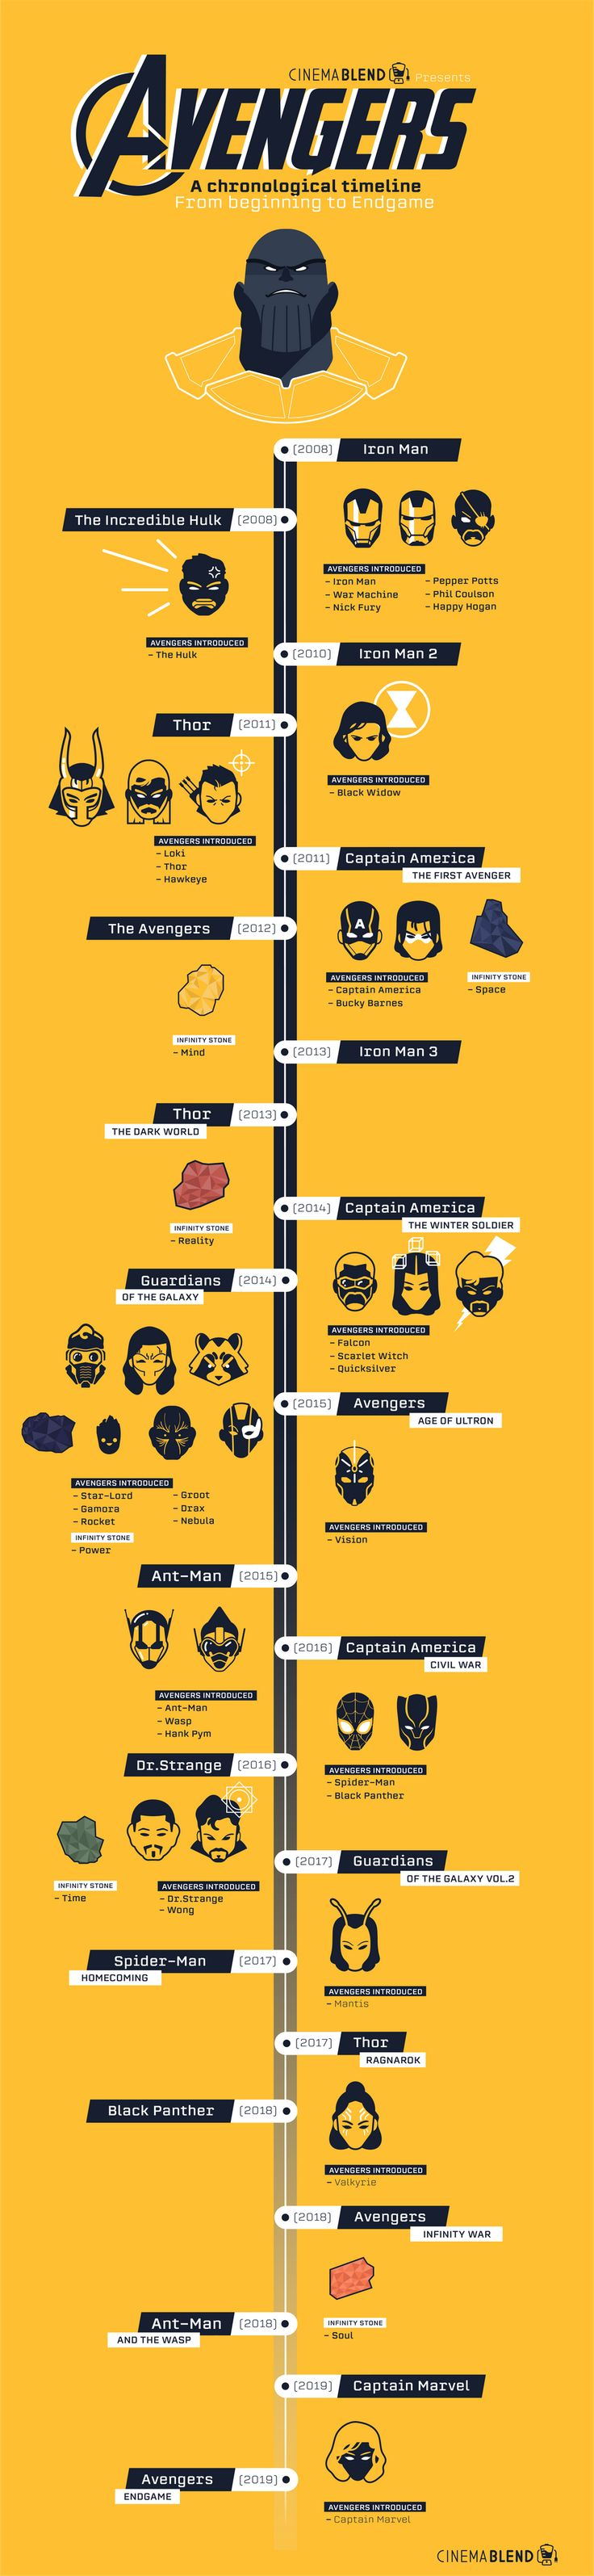 A Marvel Movies Timeline To Watch From Beginning To Endgame